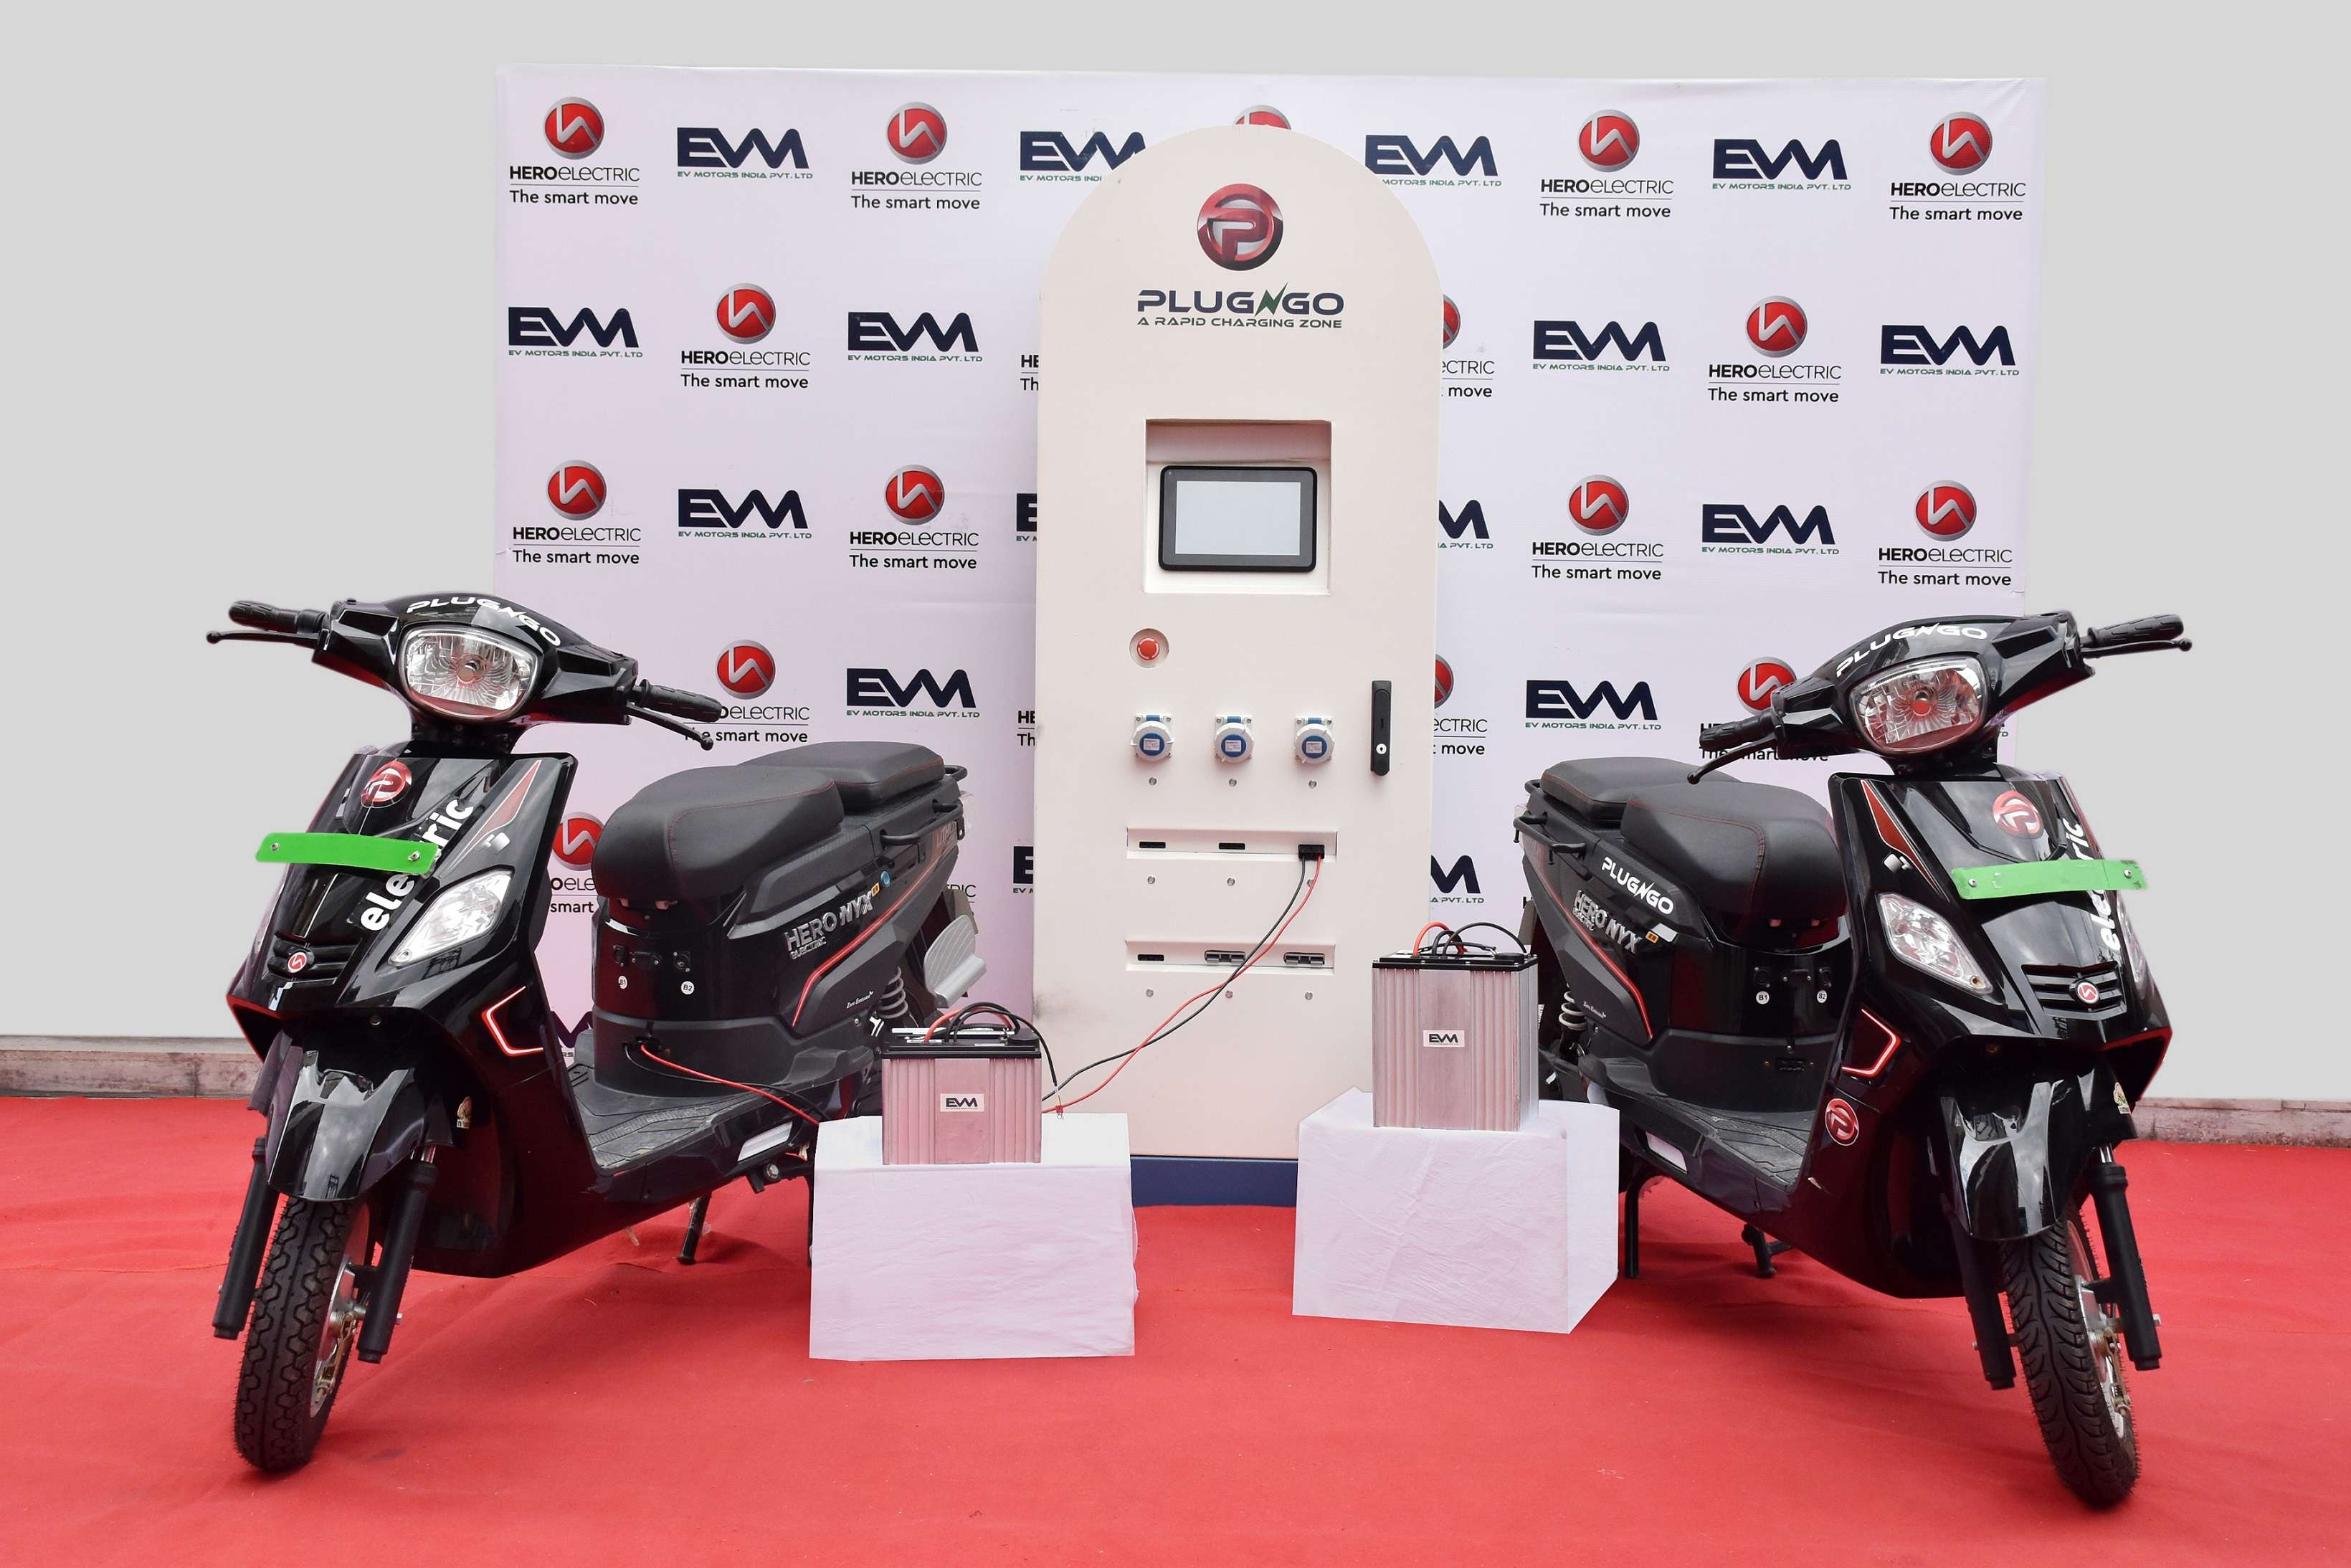 As part of the partnership EVM will be integrating its batteries with Hero e-bikes that can be supercharged in less than 30 minutes using the rapid charging station network PlugNgo being set up by EV Motors, a company statement said.